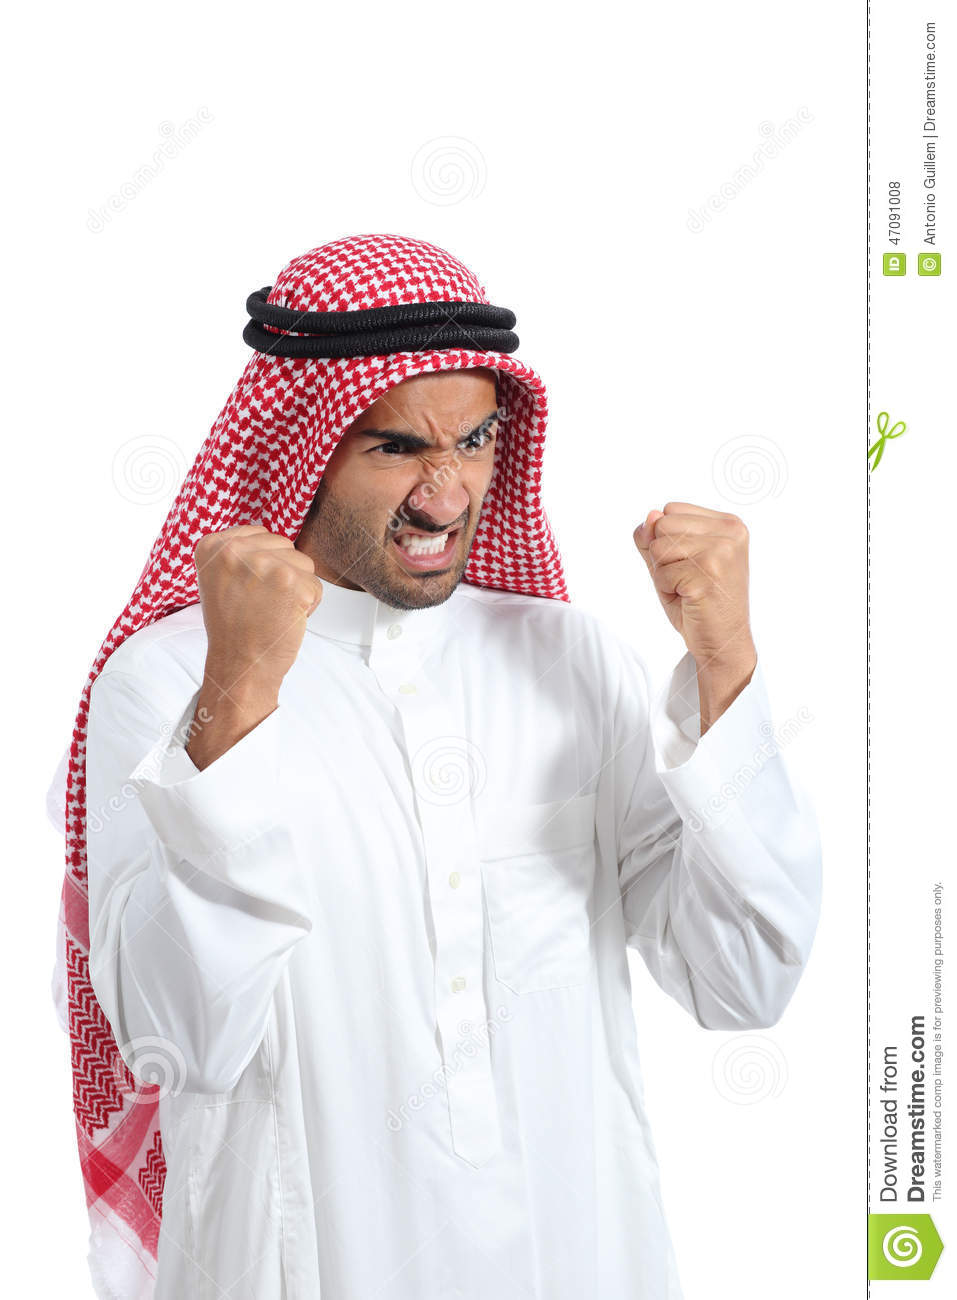 Hot saudi porn your